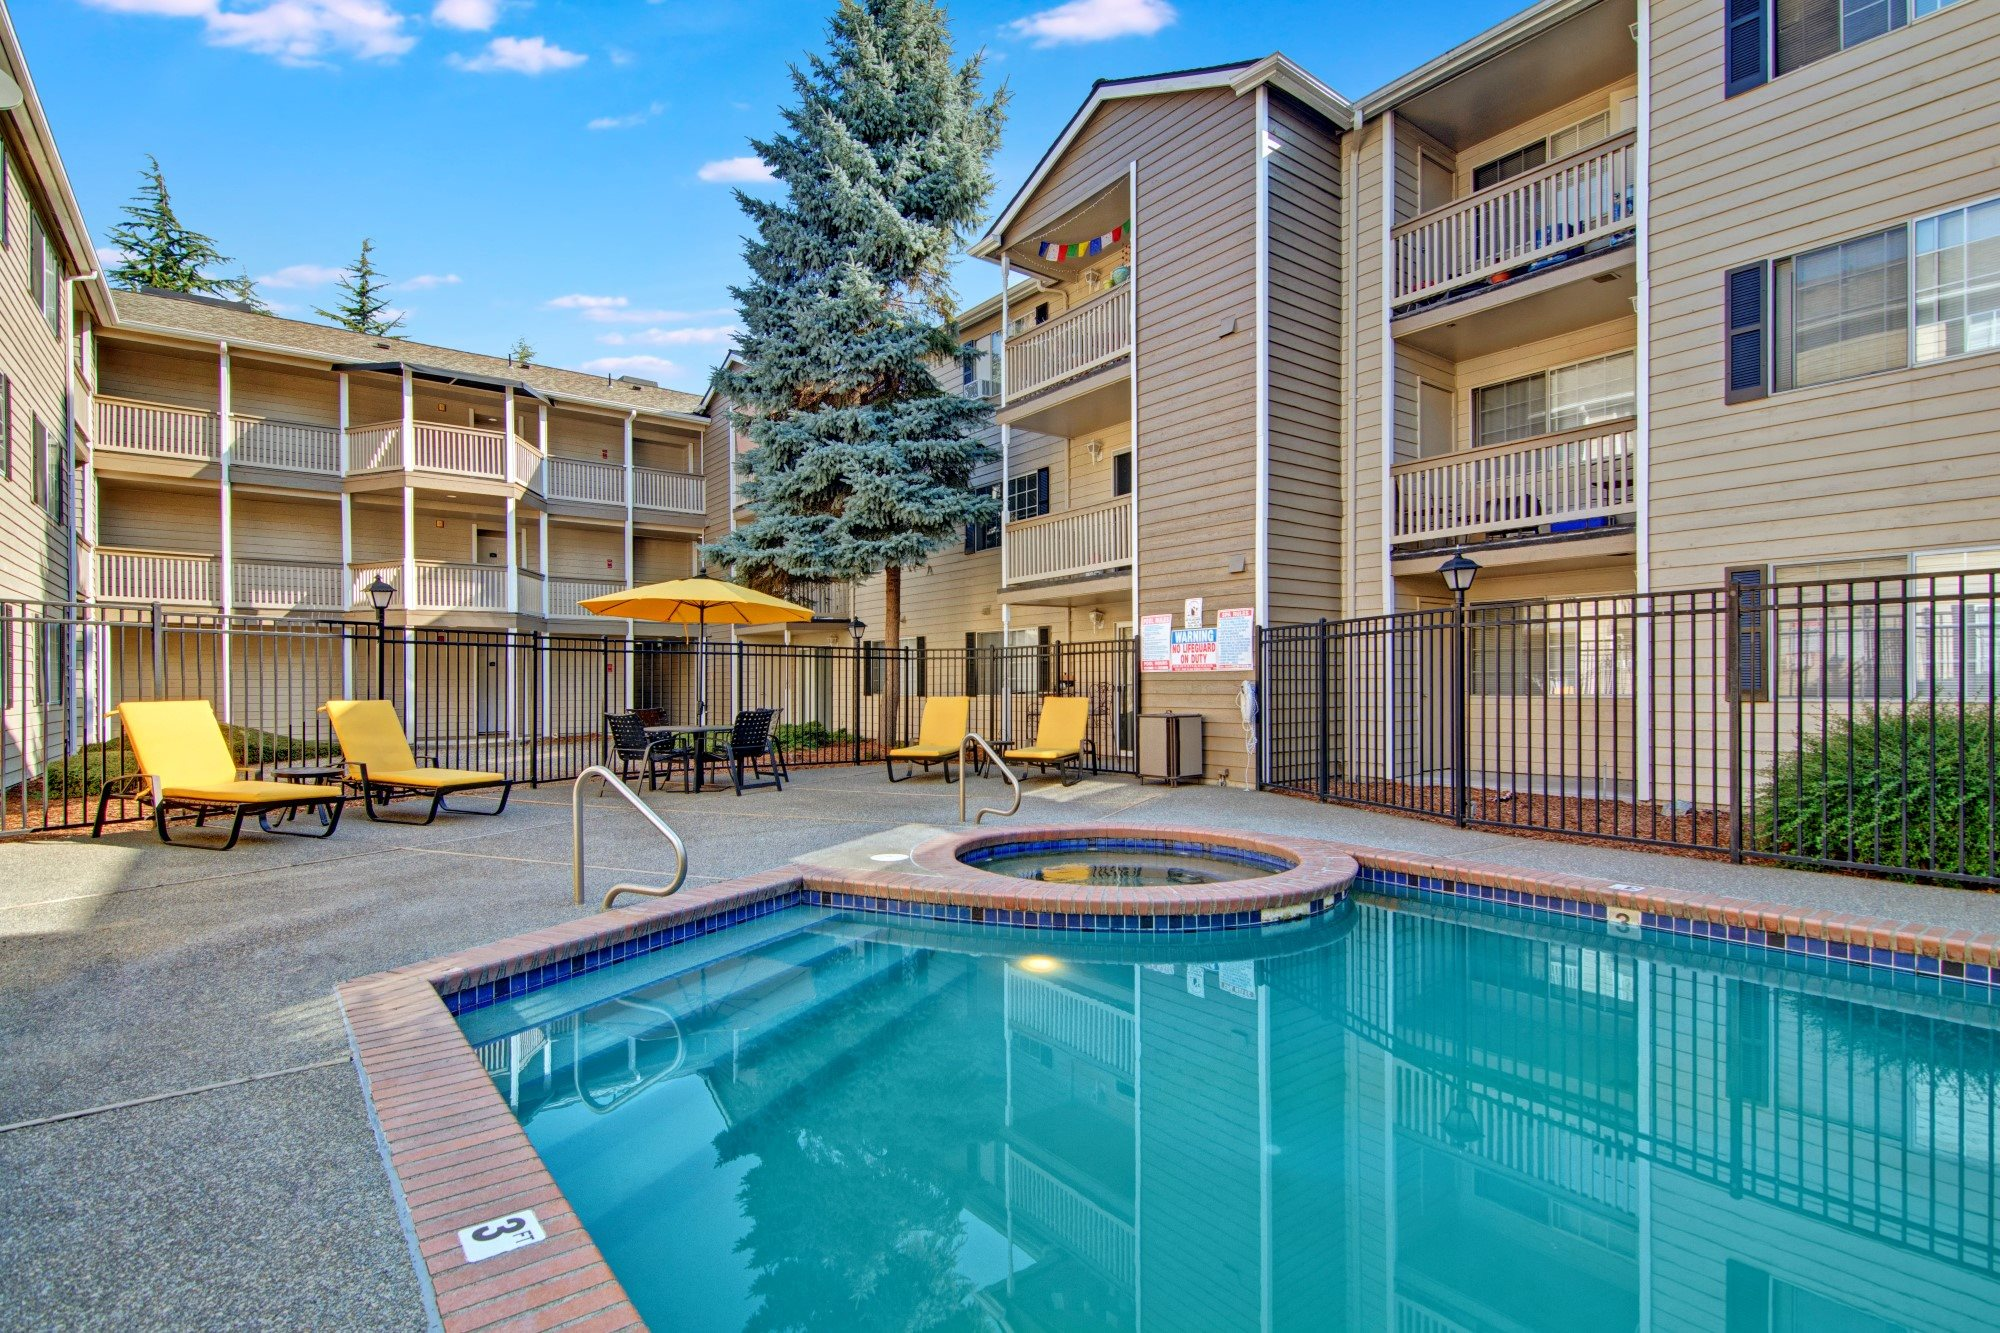 Bayview Apartment Homes Pool and Spa Courtyard